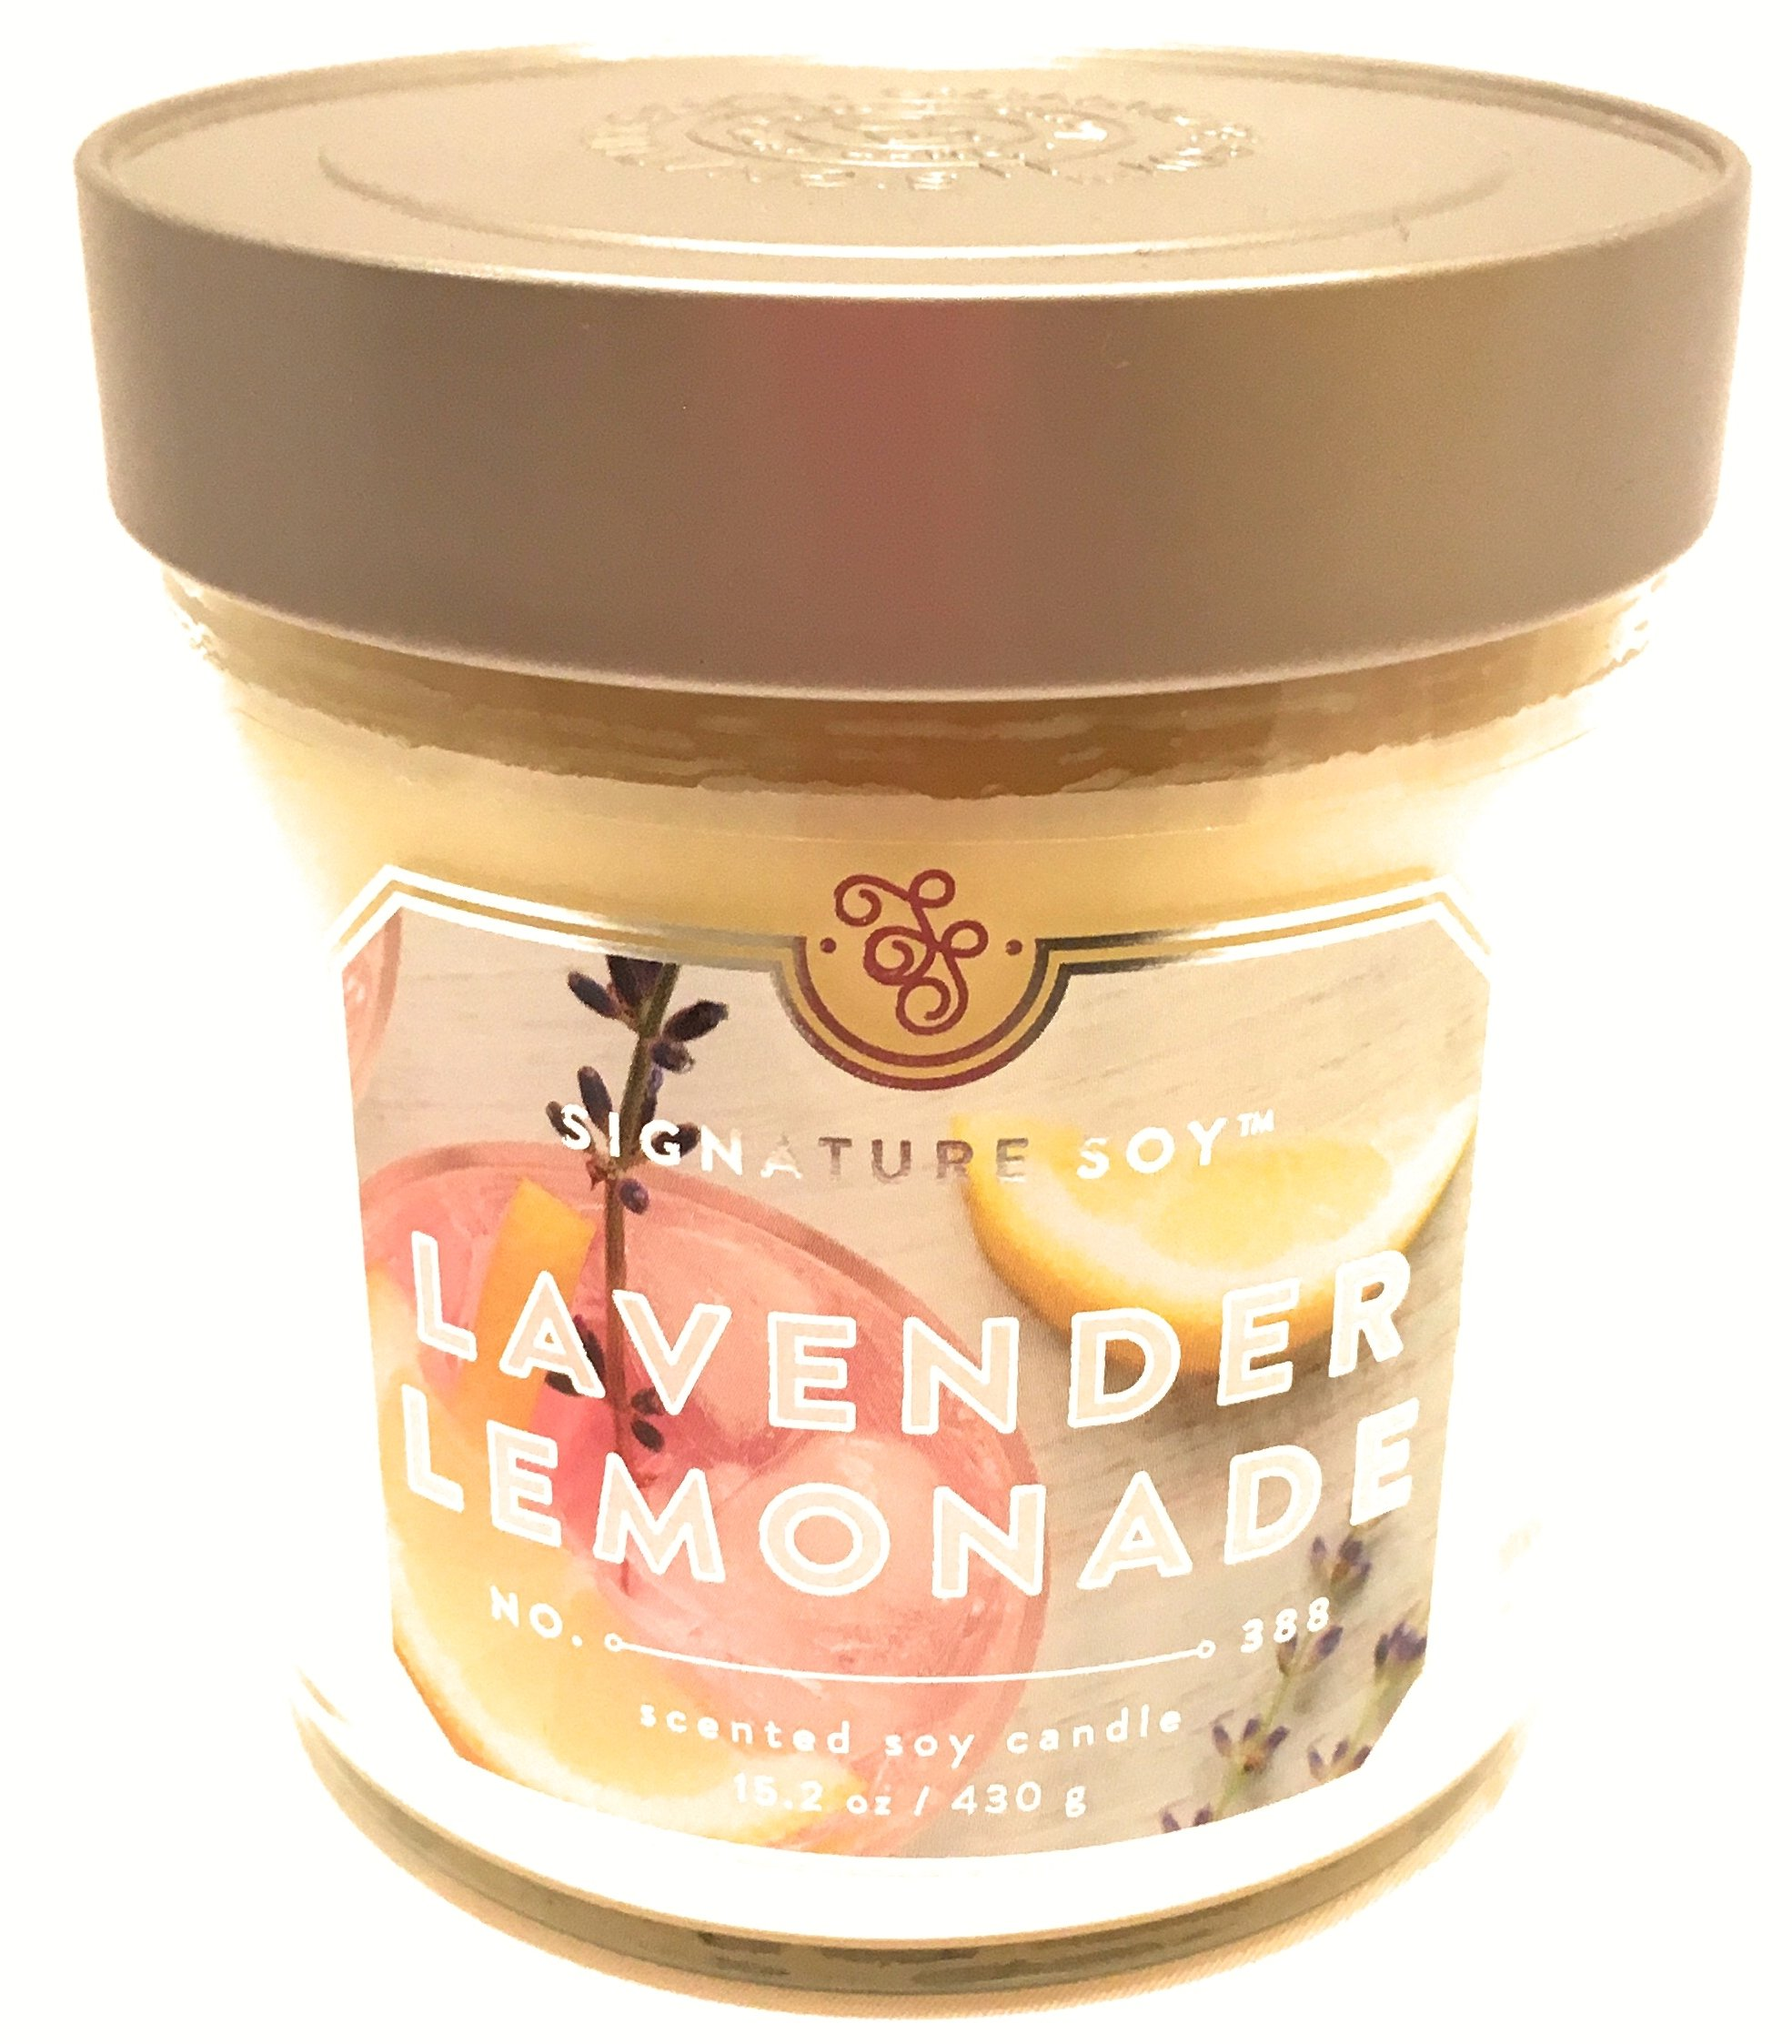 Nature Soy Lavender Lemonade Scented Soy Candle